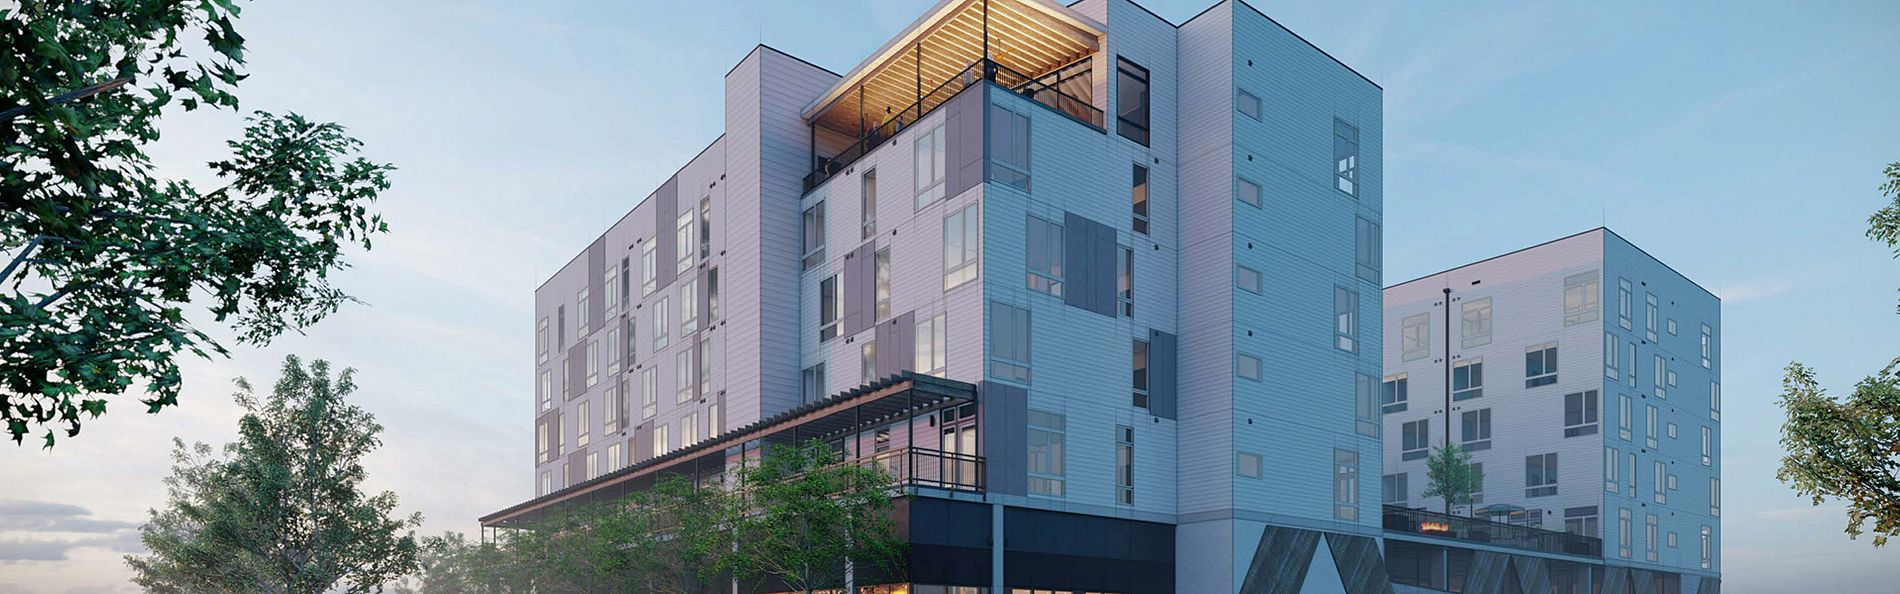 Rigsbee Apartments Exterior Rendering